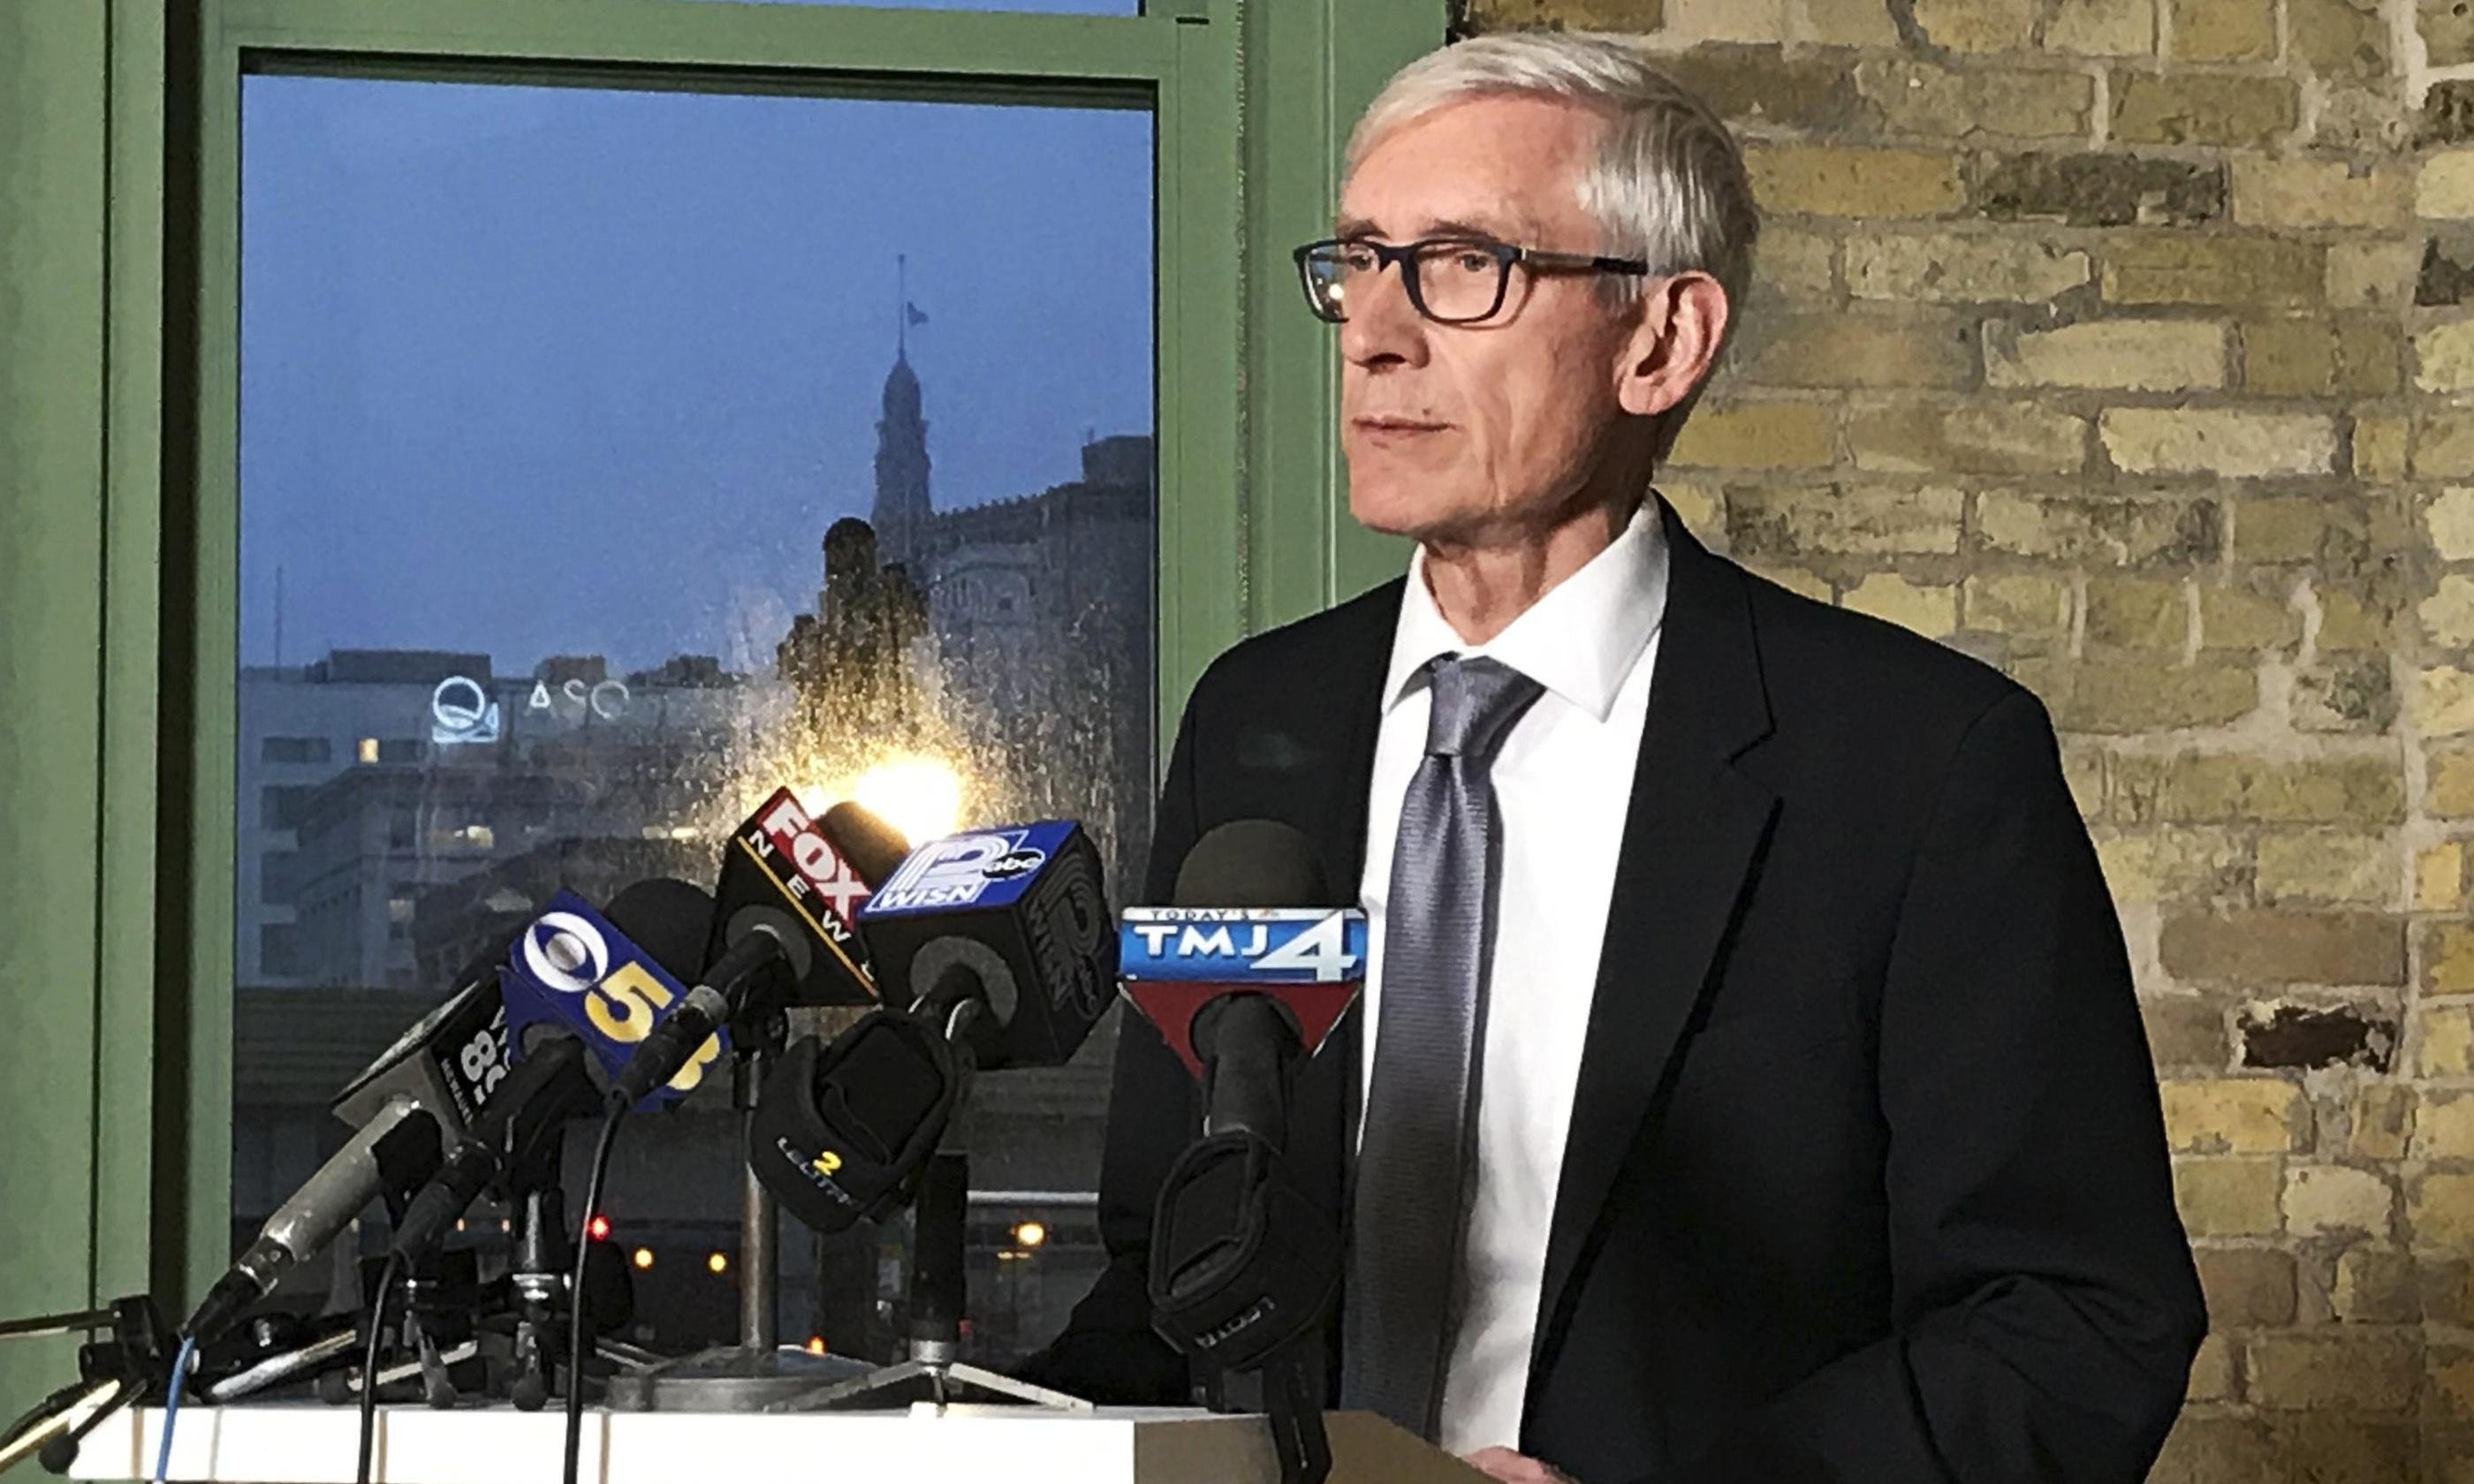 Wisconsin launches taskforce to face 'grave threat' of climate crisis